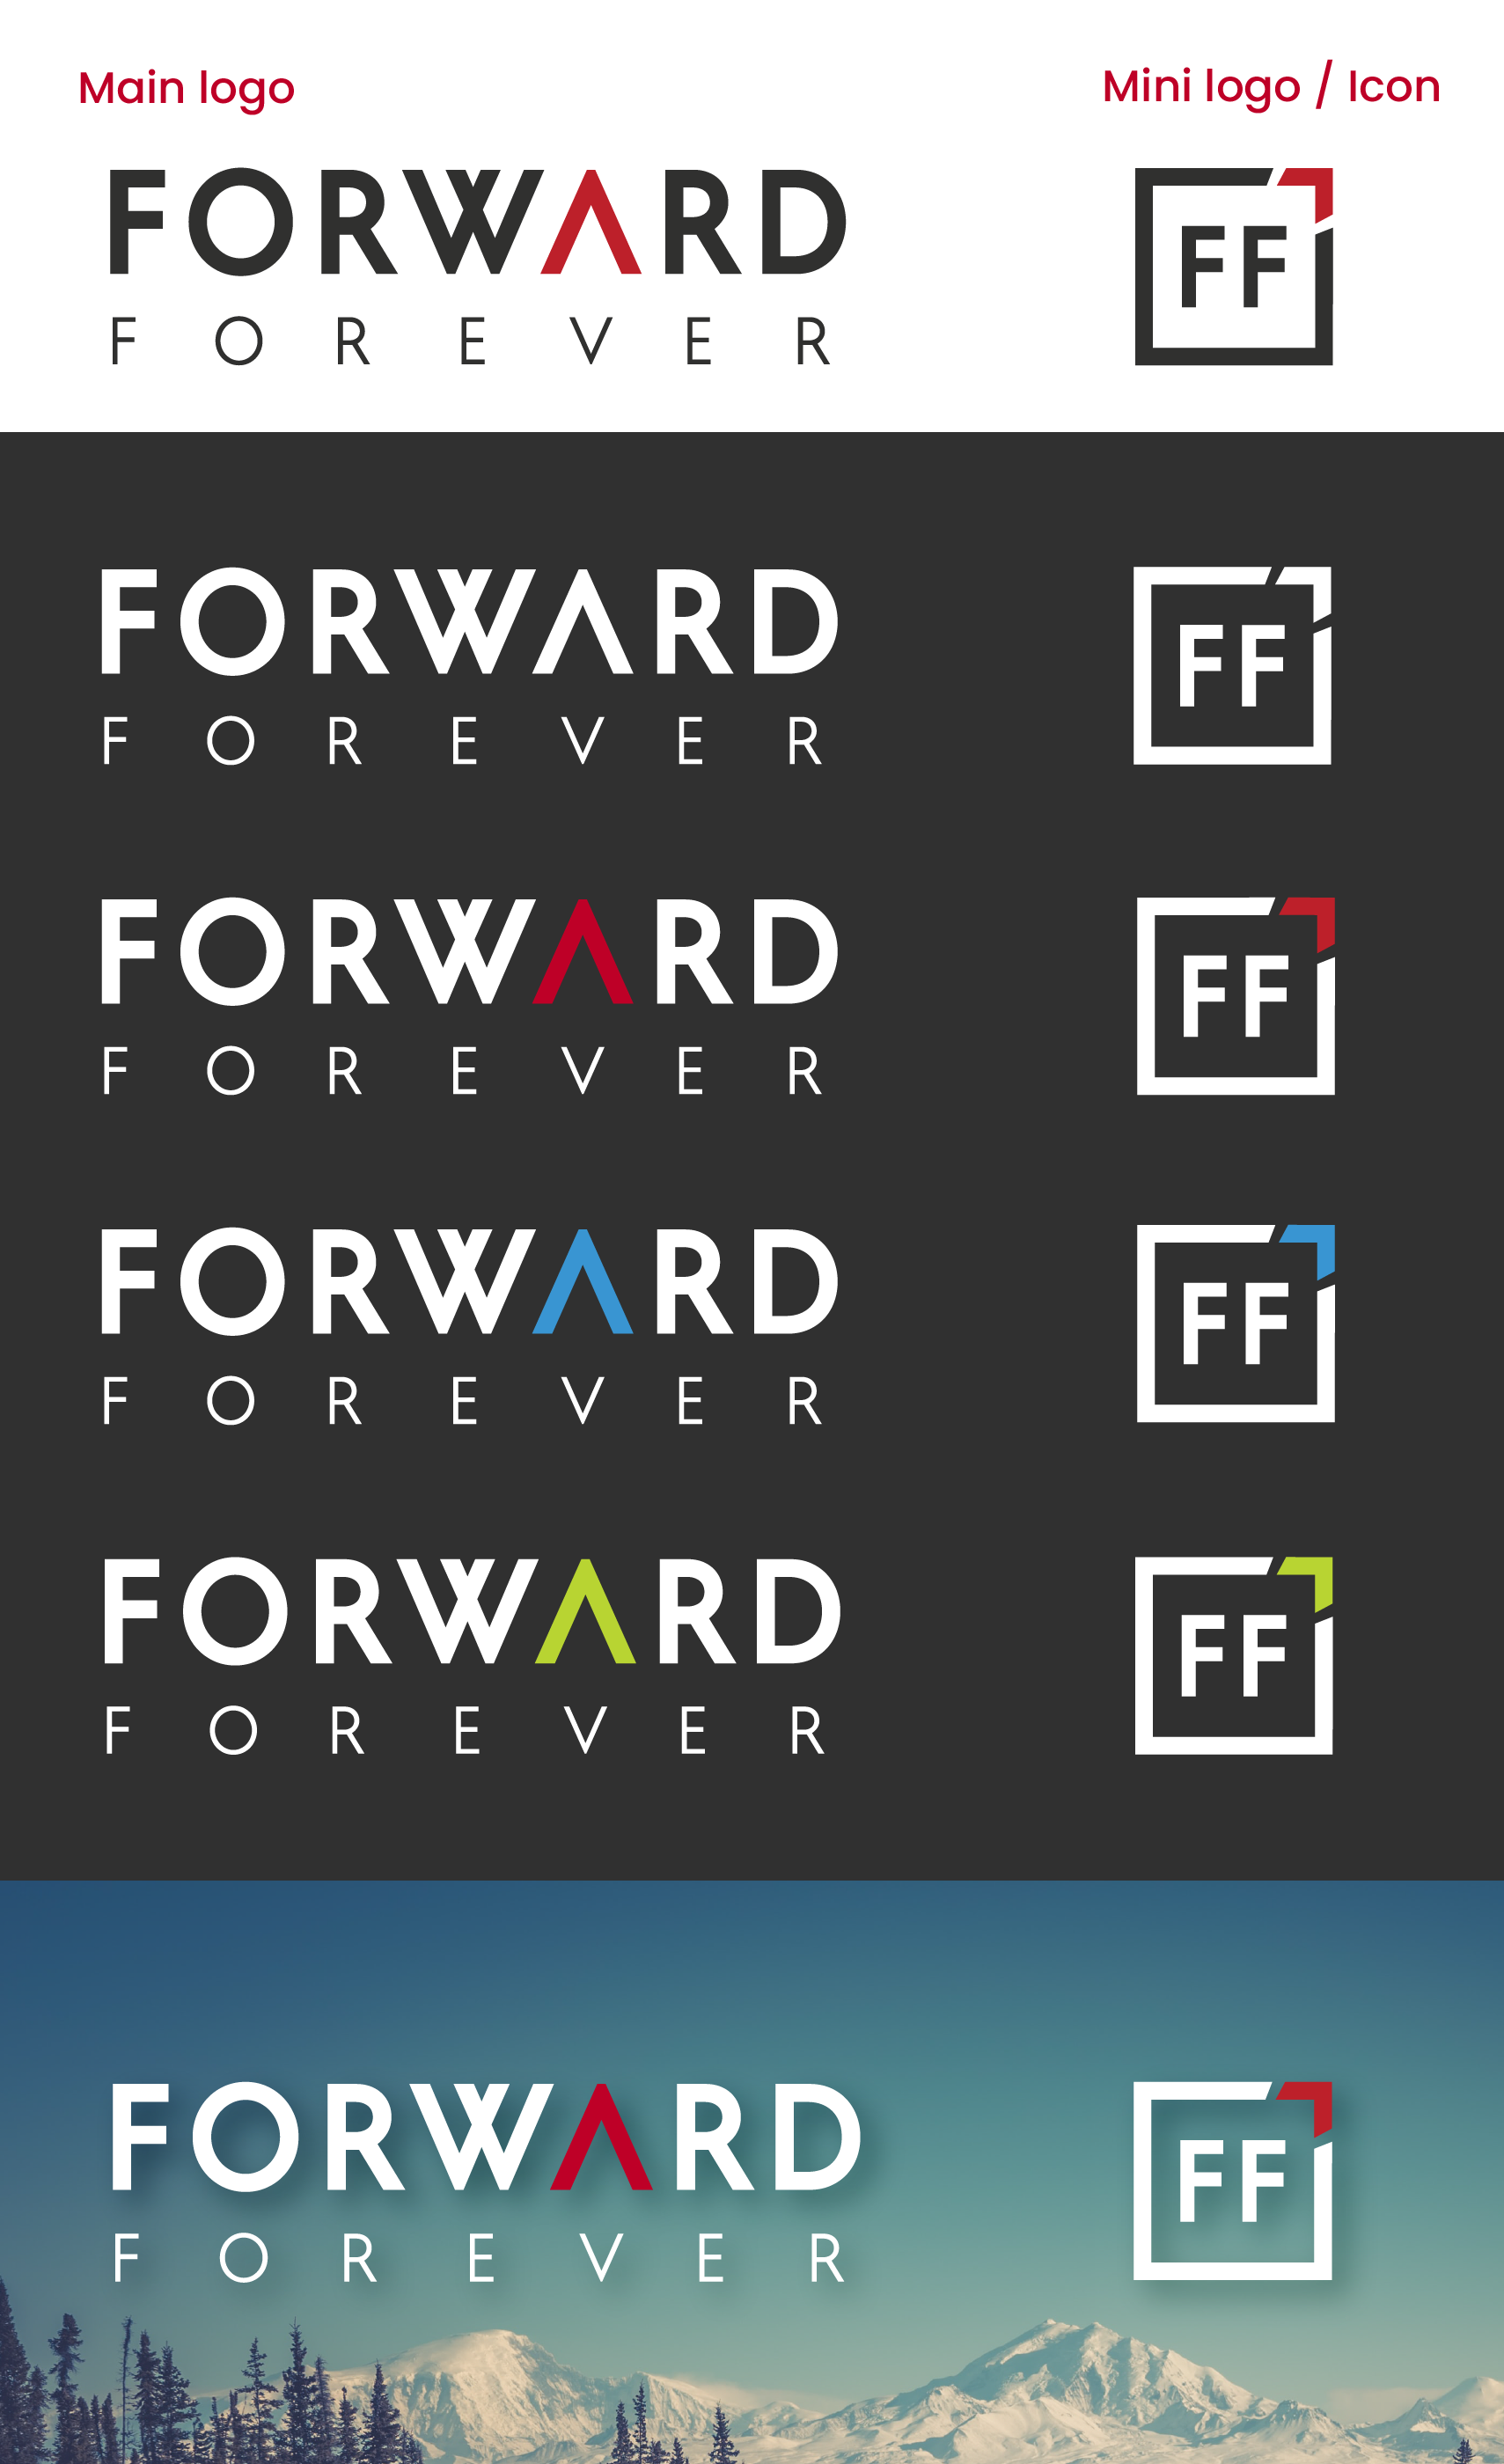 FF Logo and Icon